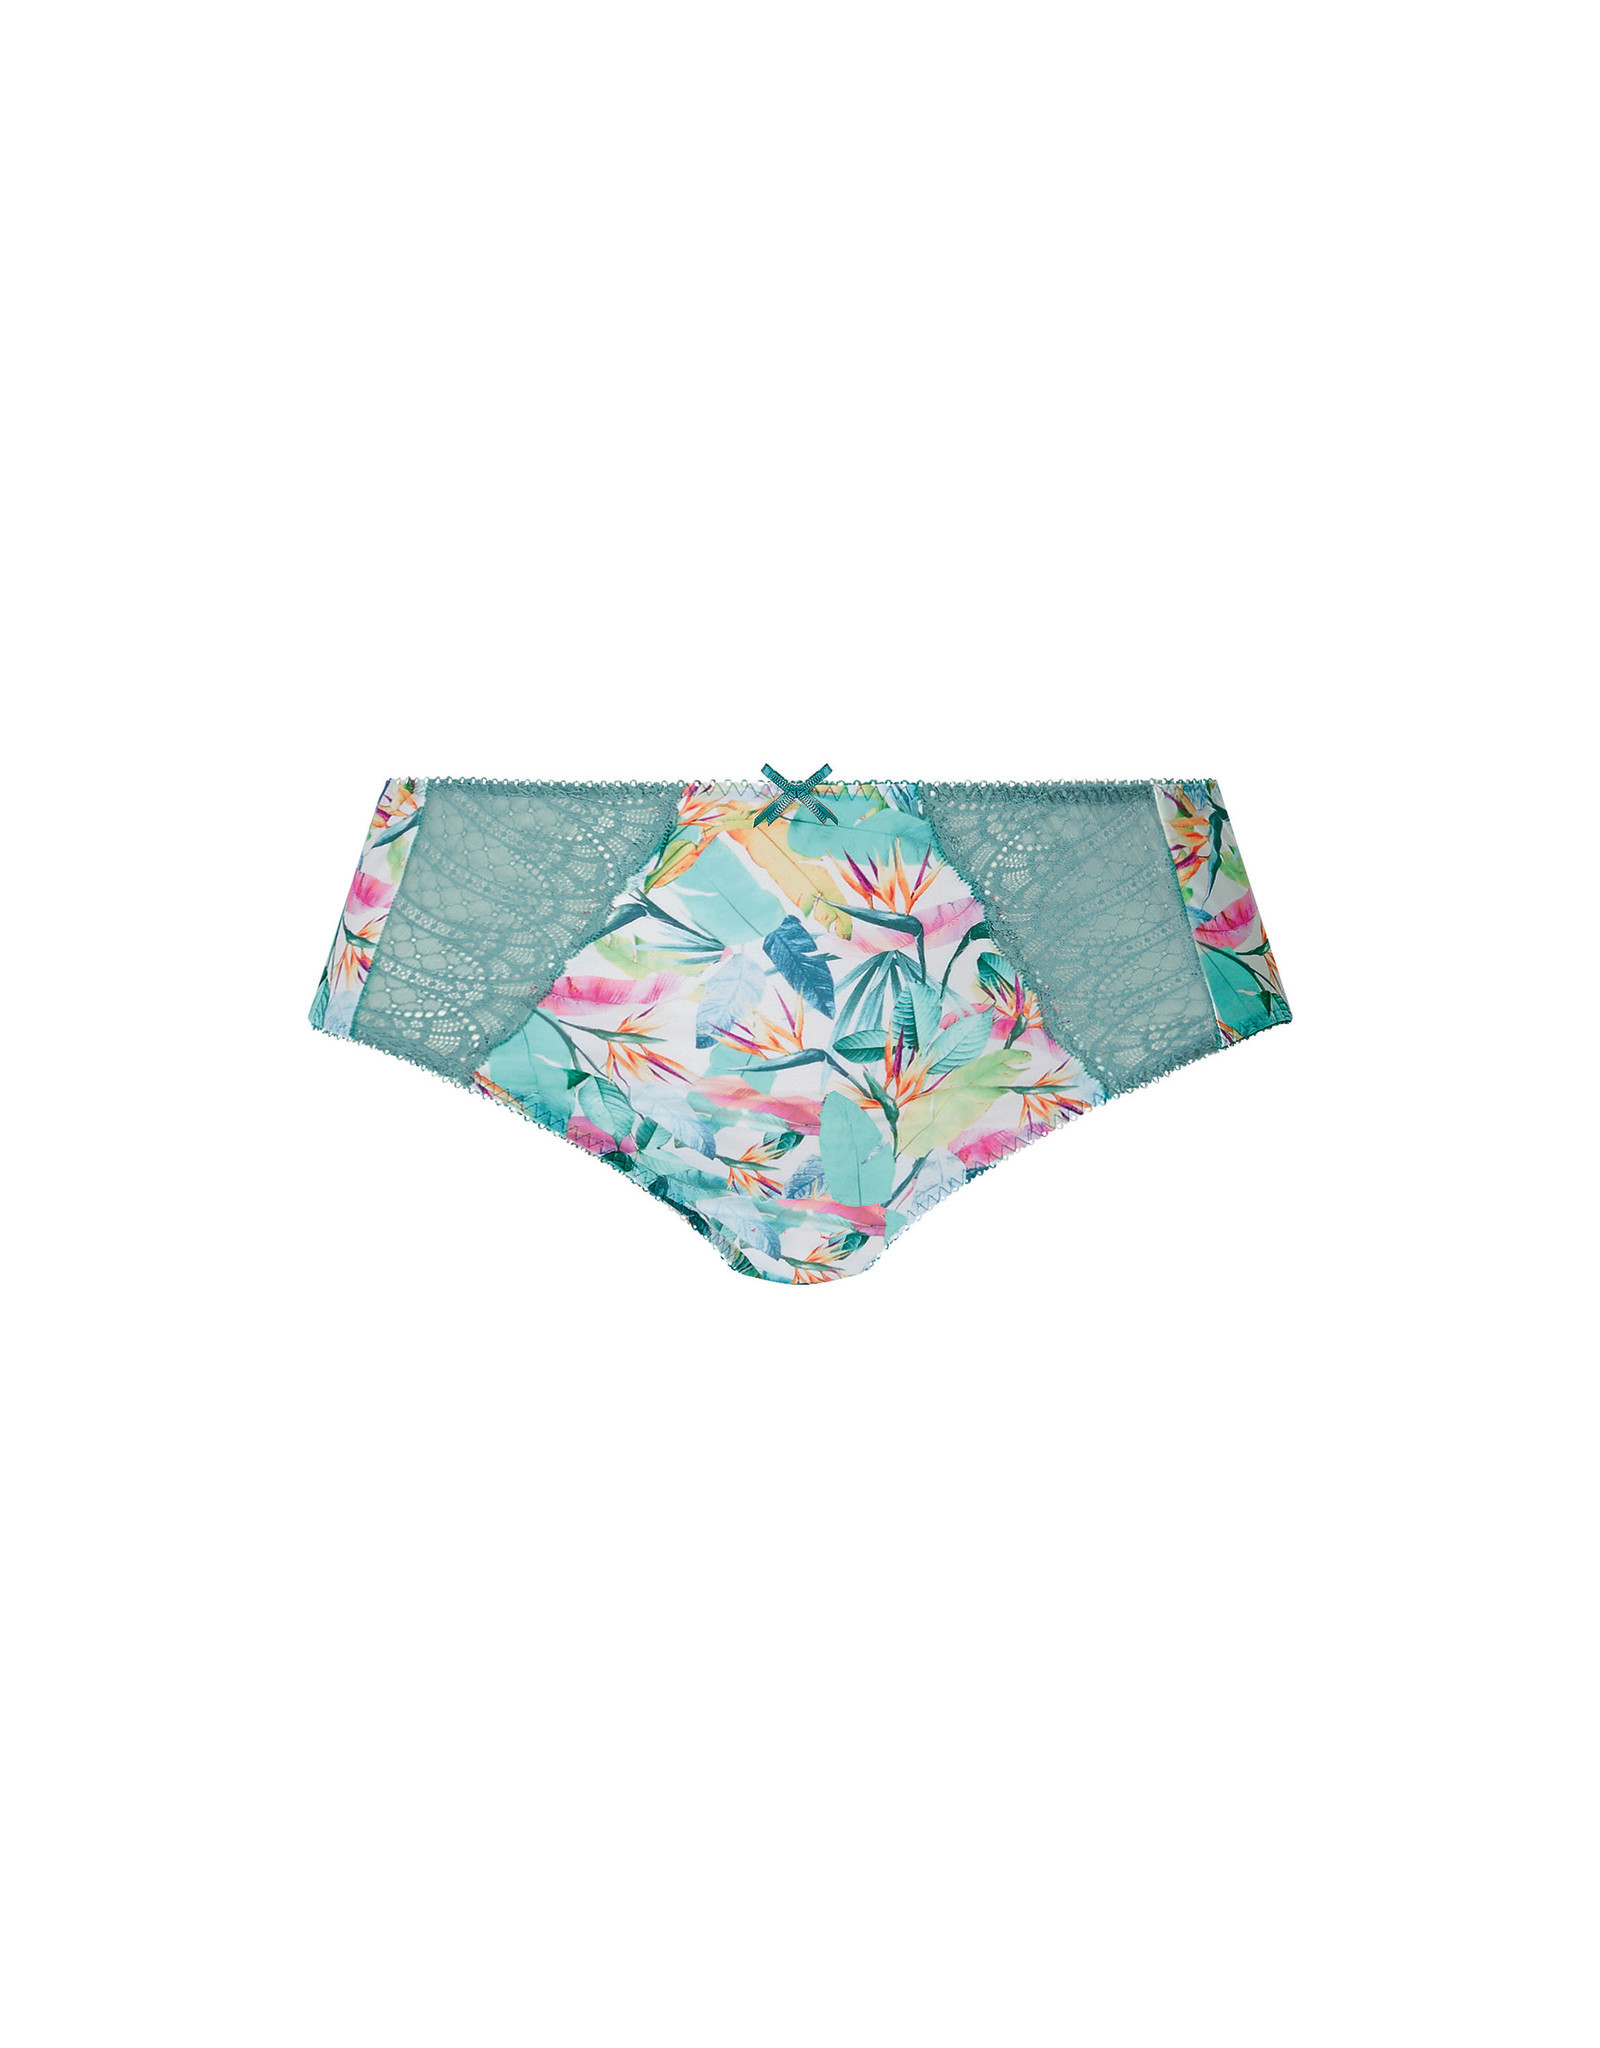 Elomi EL Mariella Full Brief